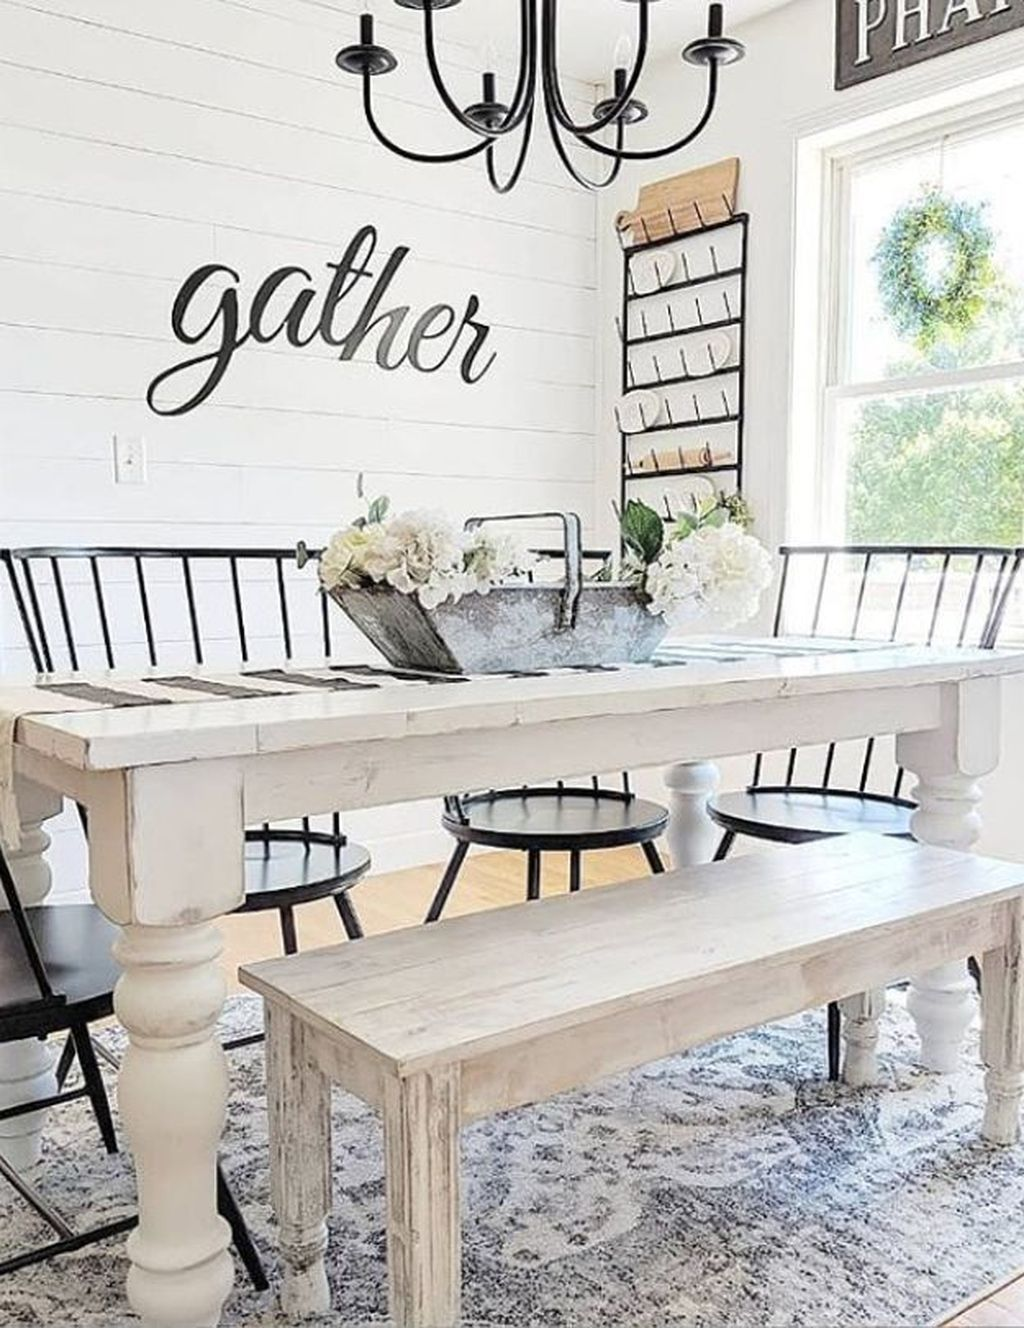 47 Awesome Dining Room Rug Design Ideas In 2020 Farmhouse Dining Room Farmhouse Dining Room Table Farmhouse Dinning Room